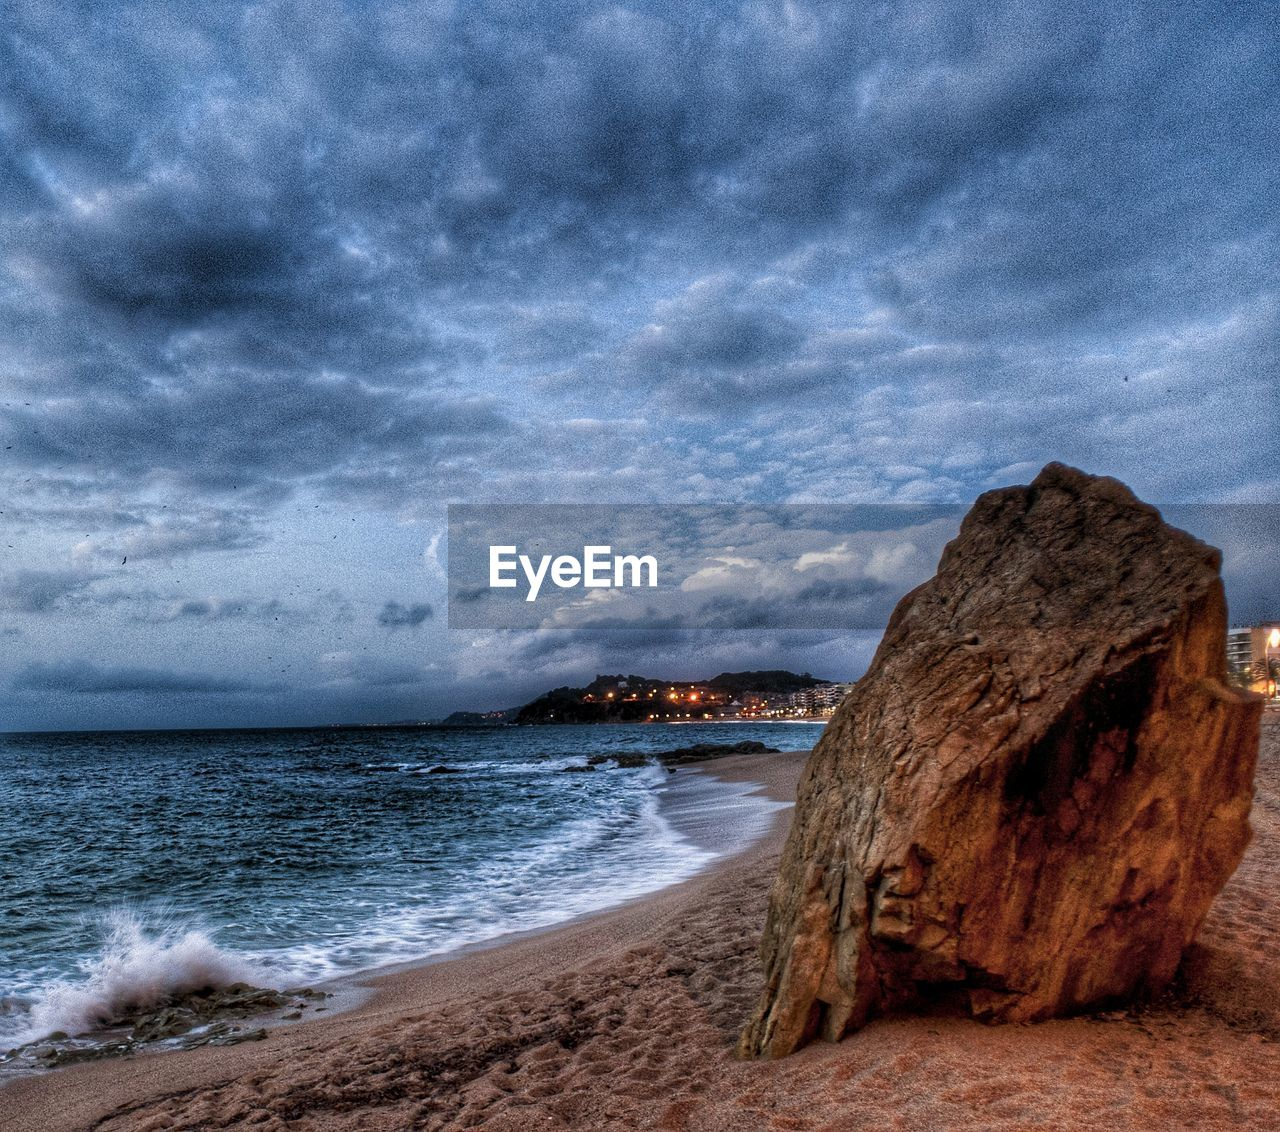 sea, cloud - sky, nature, sky, beauty in nature, no people, rock - object, scenics, beach, outdoors, sand, horizon over water, water, day, wave, storm cloud